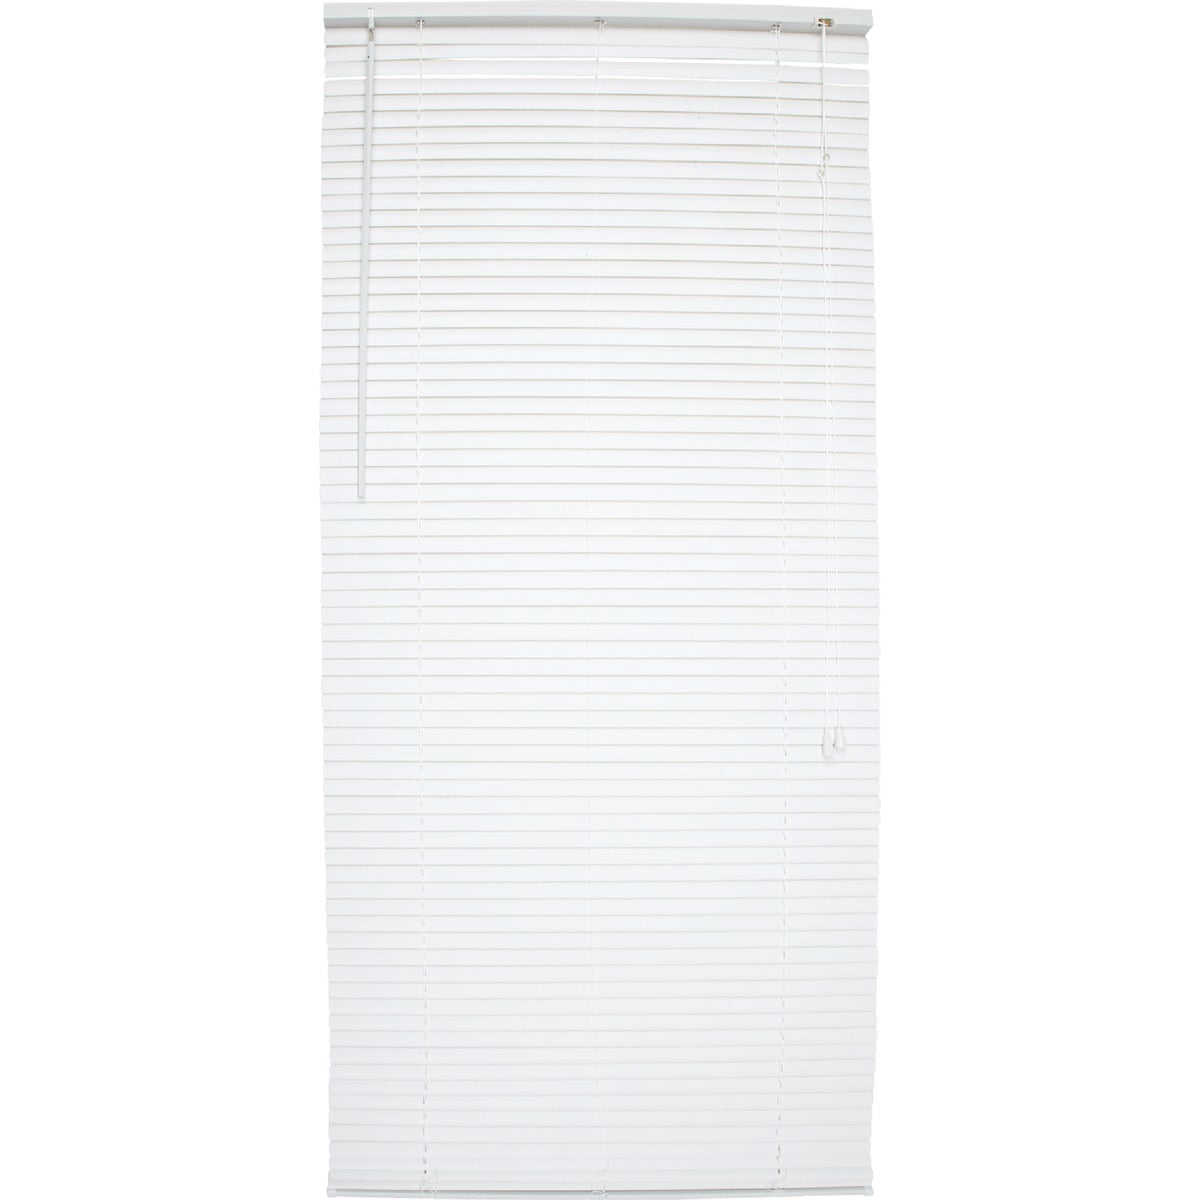 44X72 WHITE MINI BLIND - 615722 by Lotus Wind Incom